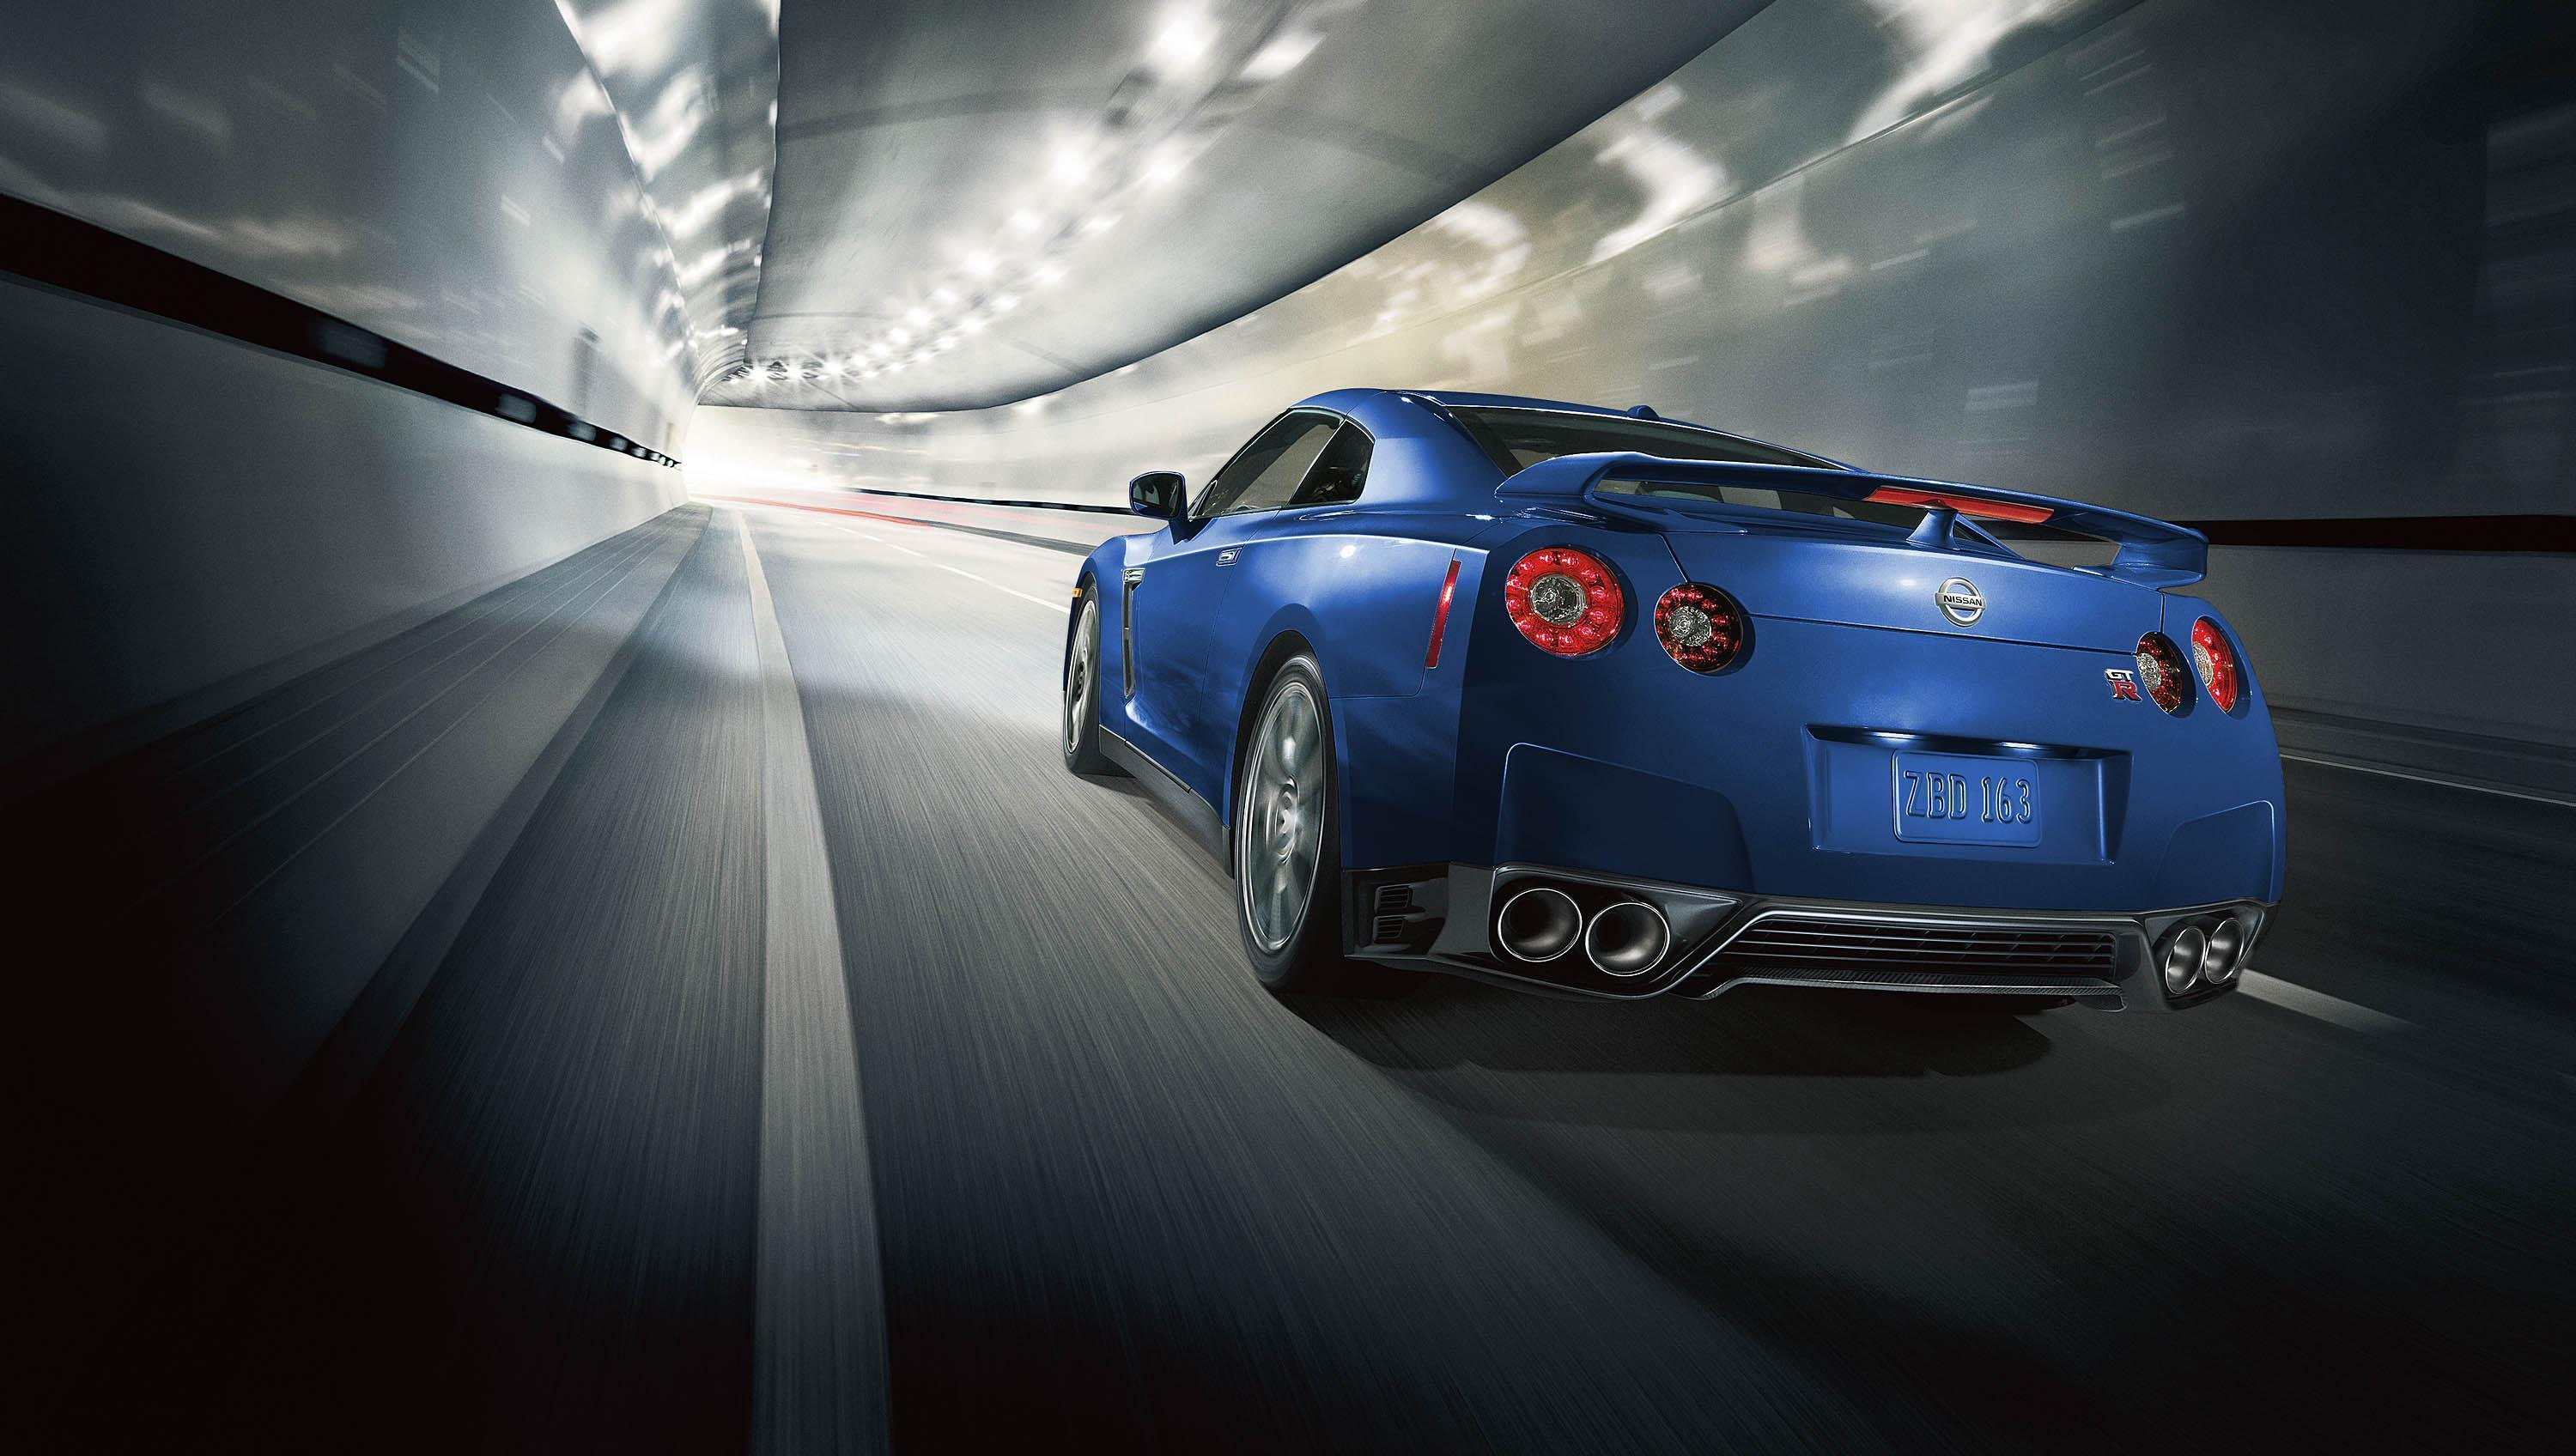 2014 Nissan Gt R Wallpapers 1024x1024 04 | Fast Cars